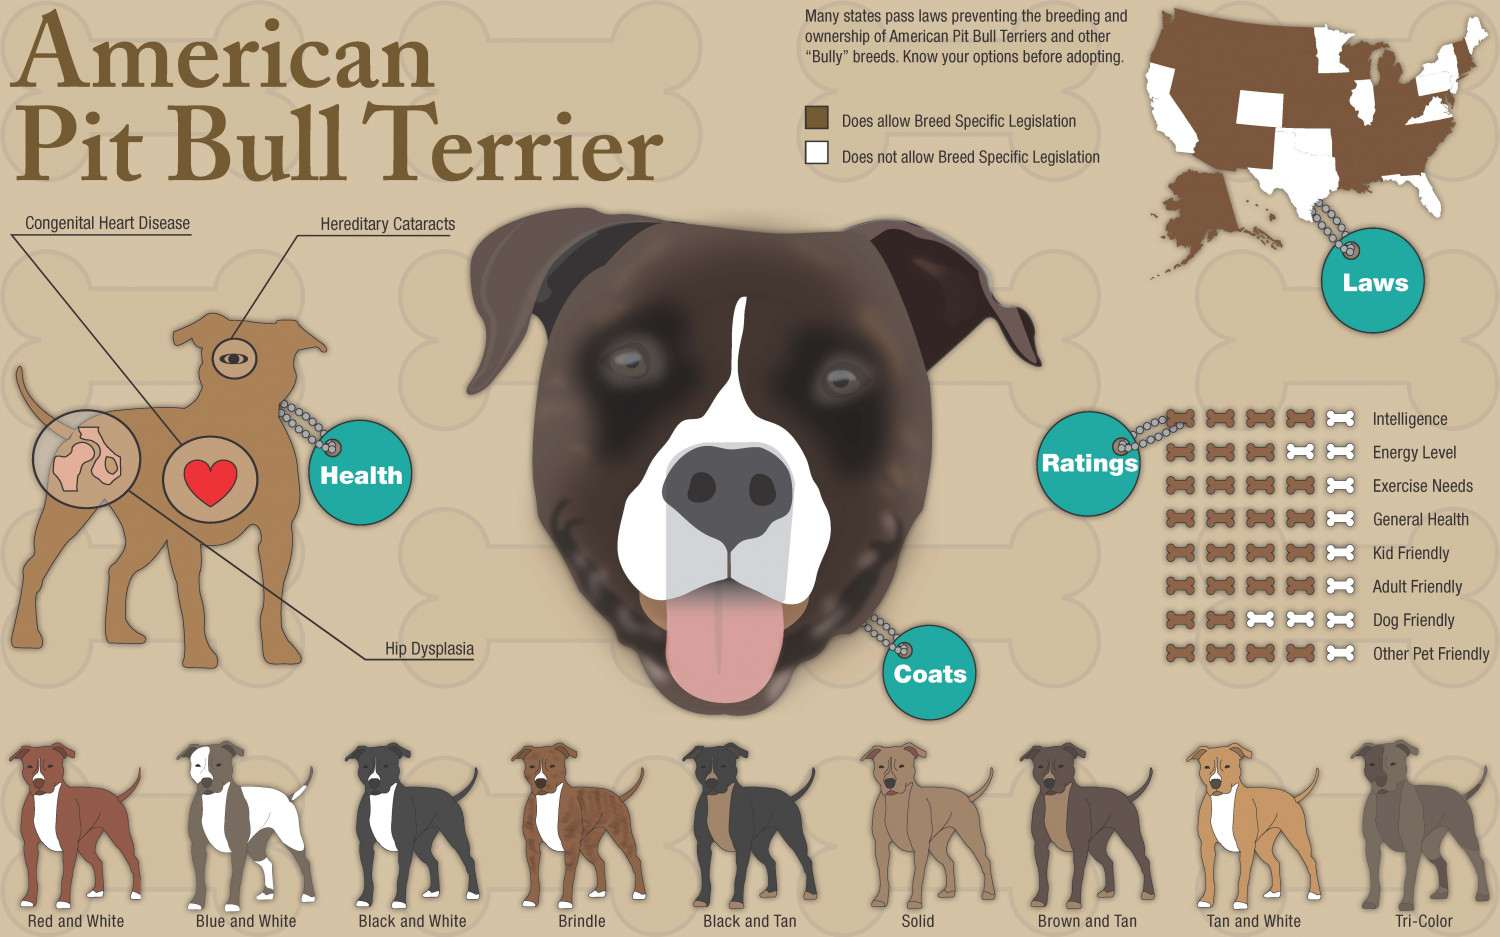 an argument against the reputation of aggressive behavior of the american staffordshire terriers pit 5 reasons why pit bulls are misunderstood  myth 3: pit bulls are naturally violent, aggressive and mean, and are very dangerous dogs  american pit bull terriers, the most popular breed used .